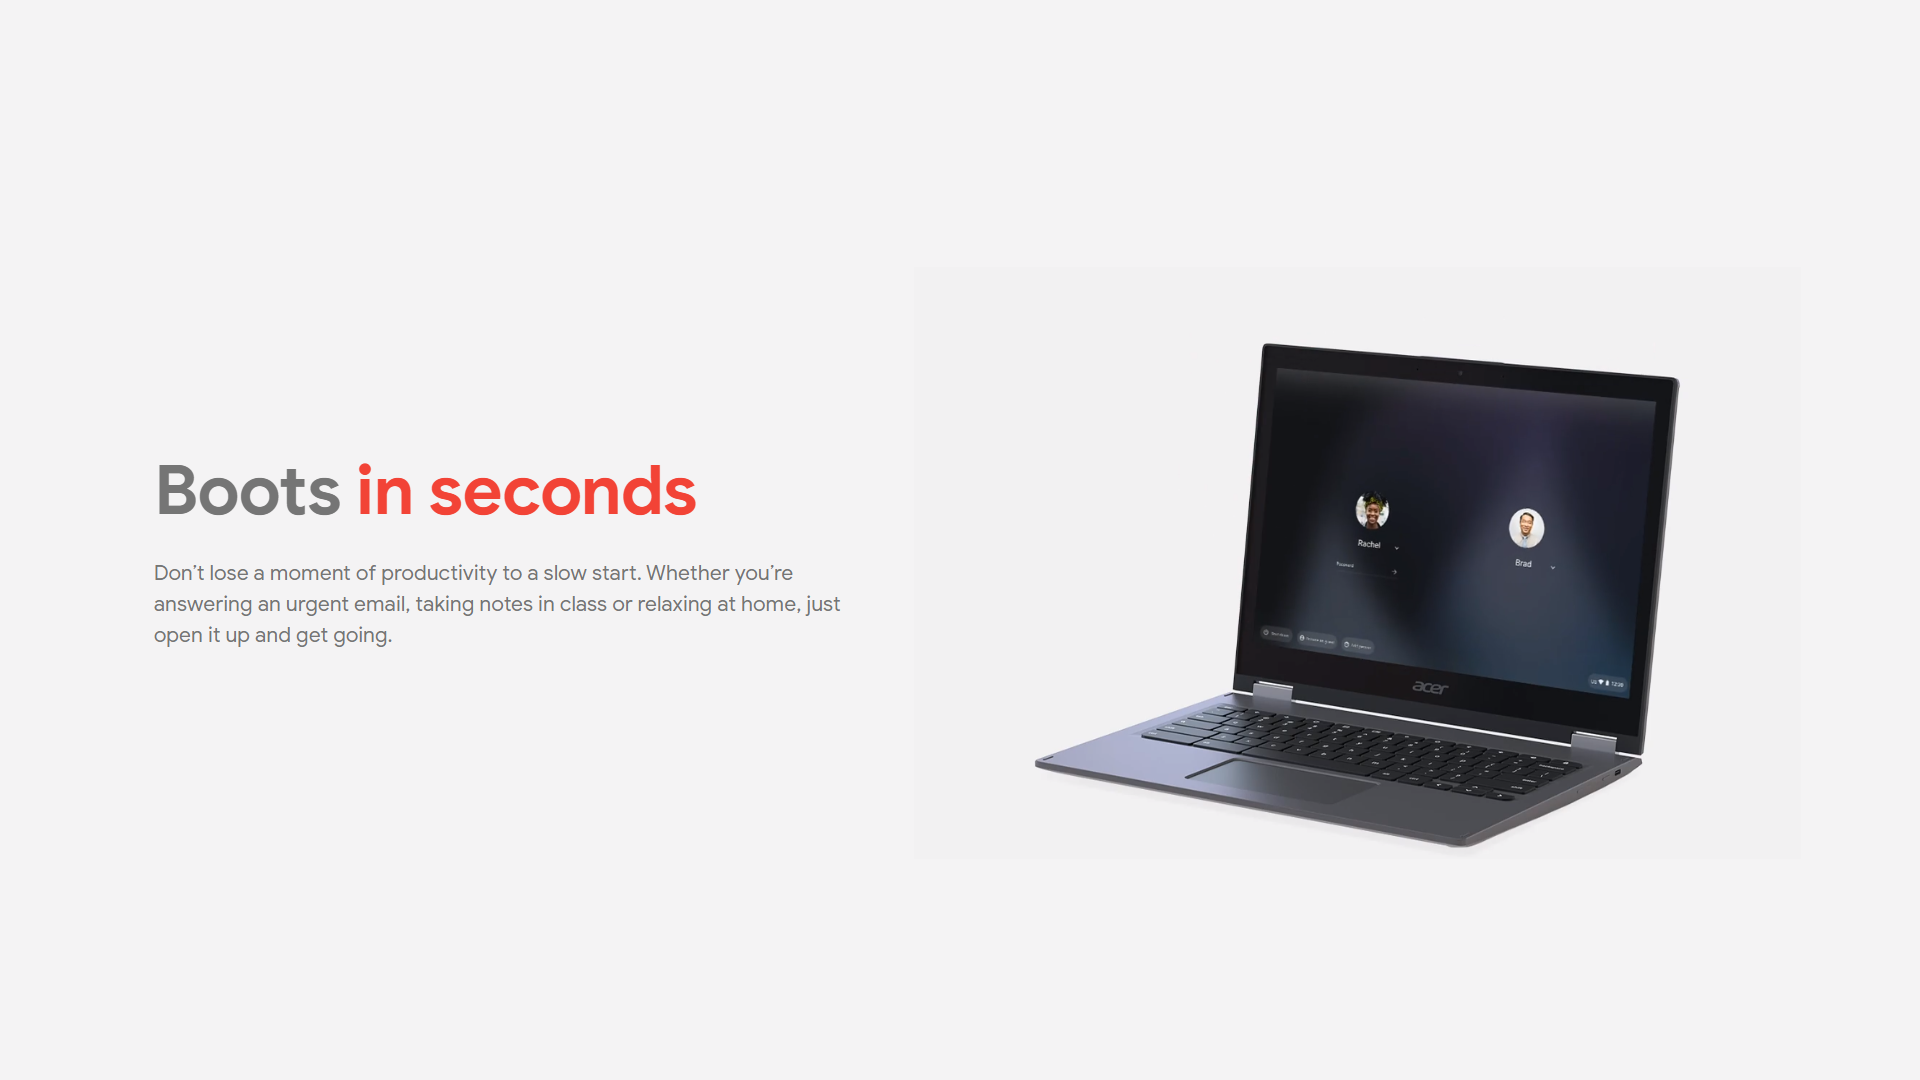 A promo image about Chromebooks booting up instantly